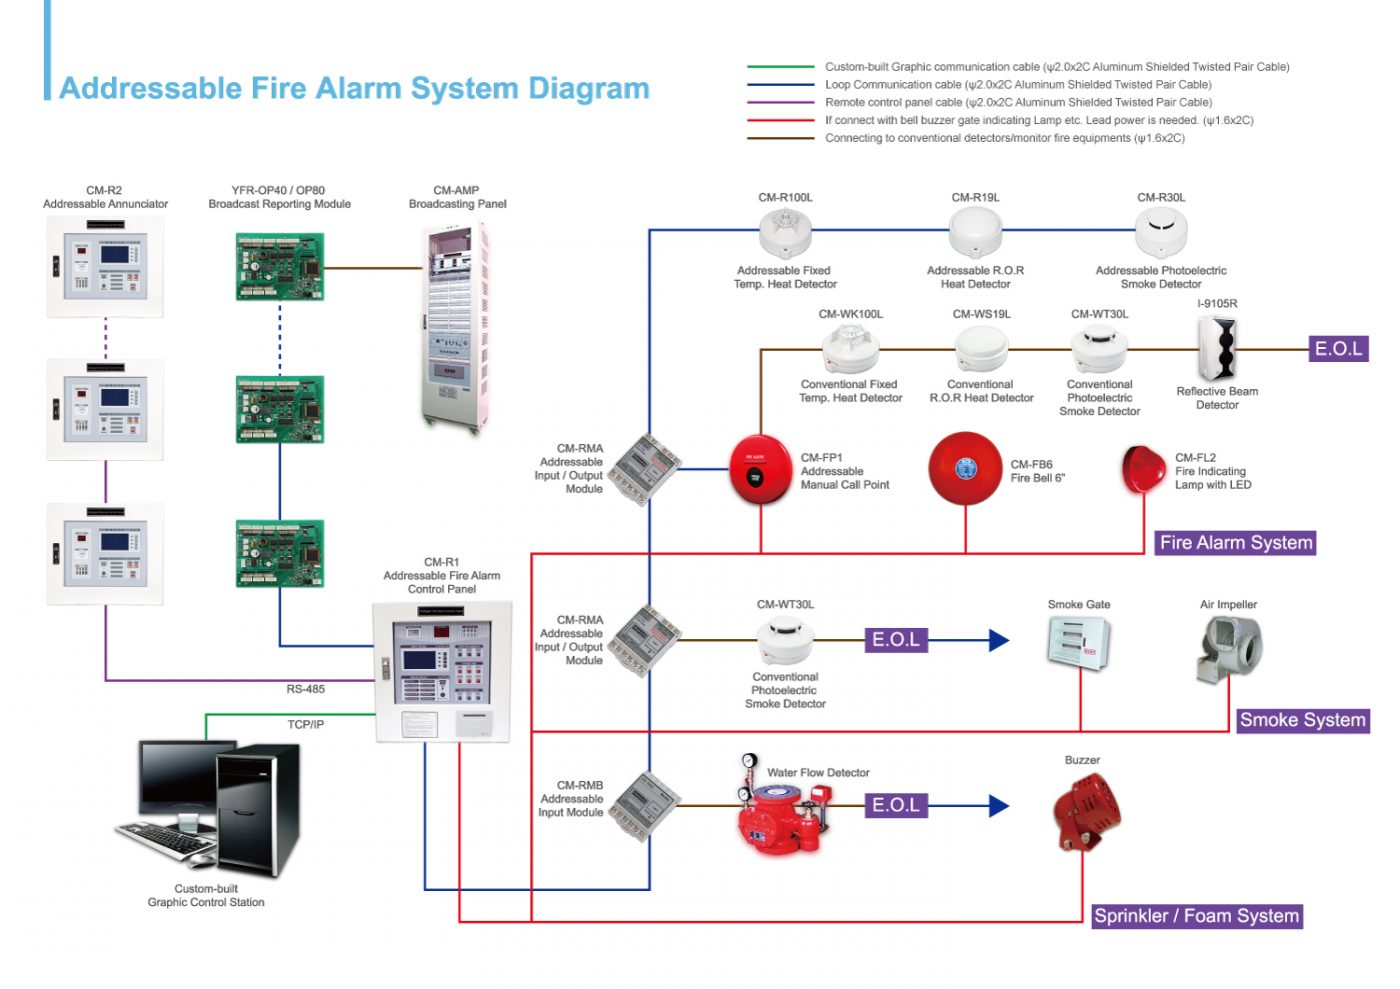 Fire Alarm Pull Station Wiring Diagram from wholefoodsonabudget.com